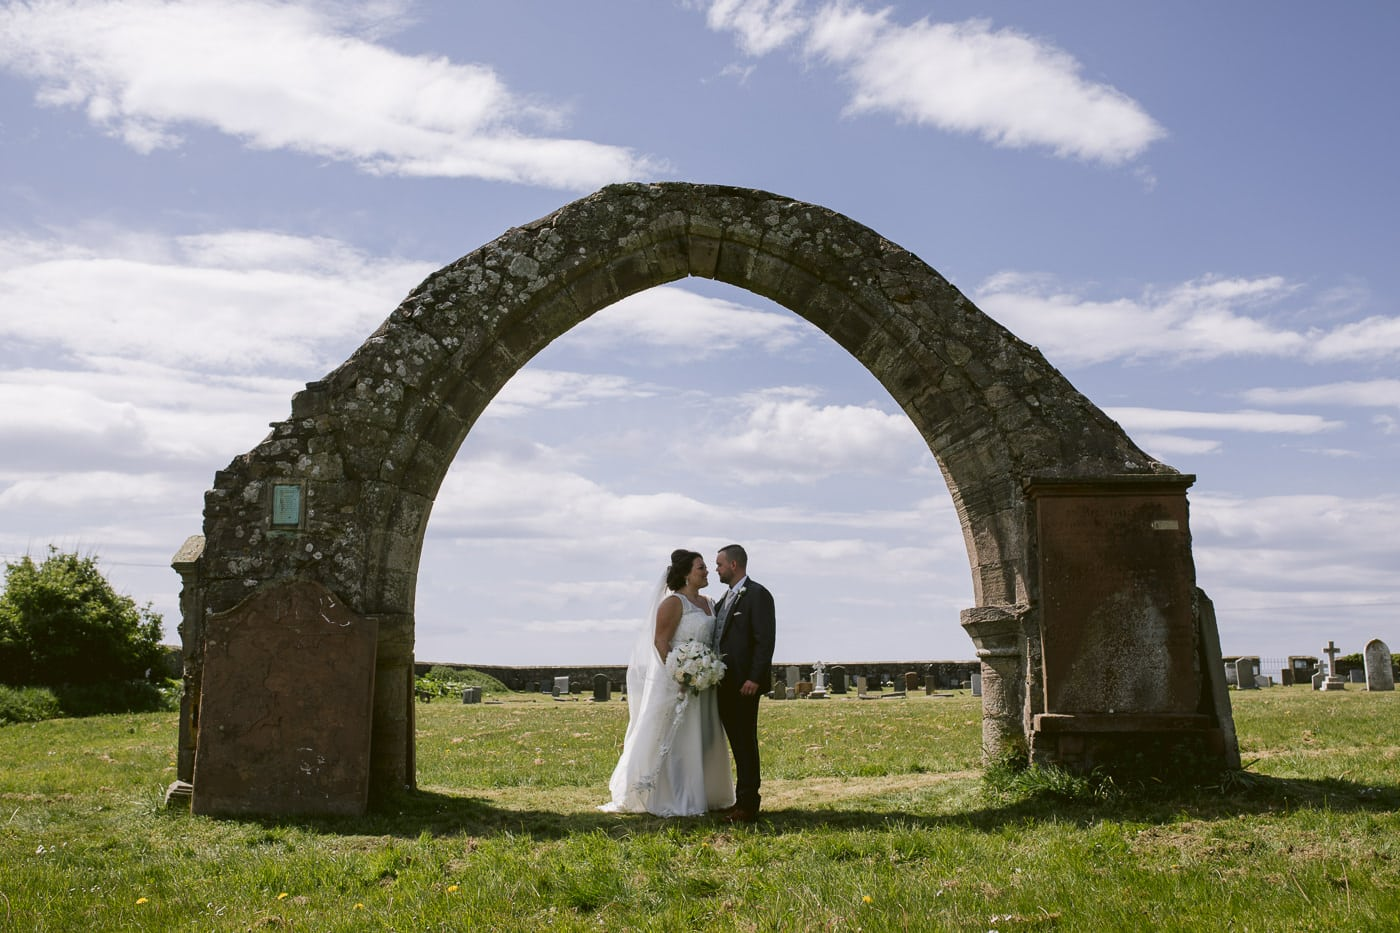 Bride and Groom Under Archway, Sunny Background Wedding Photography Session